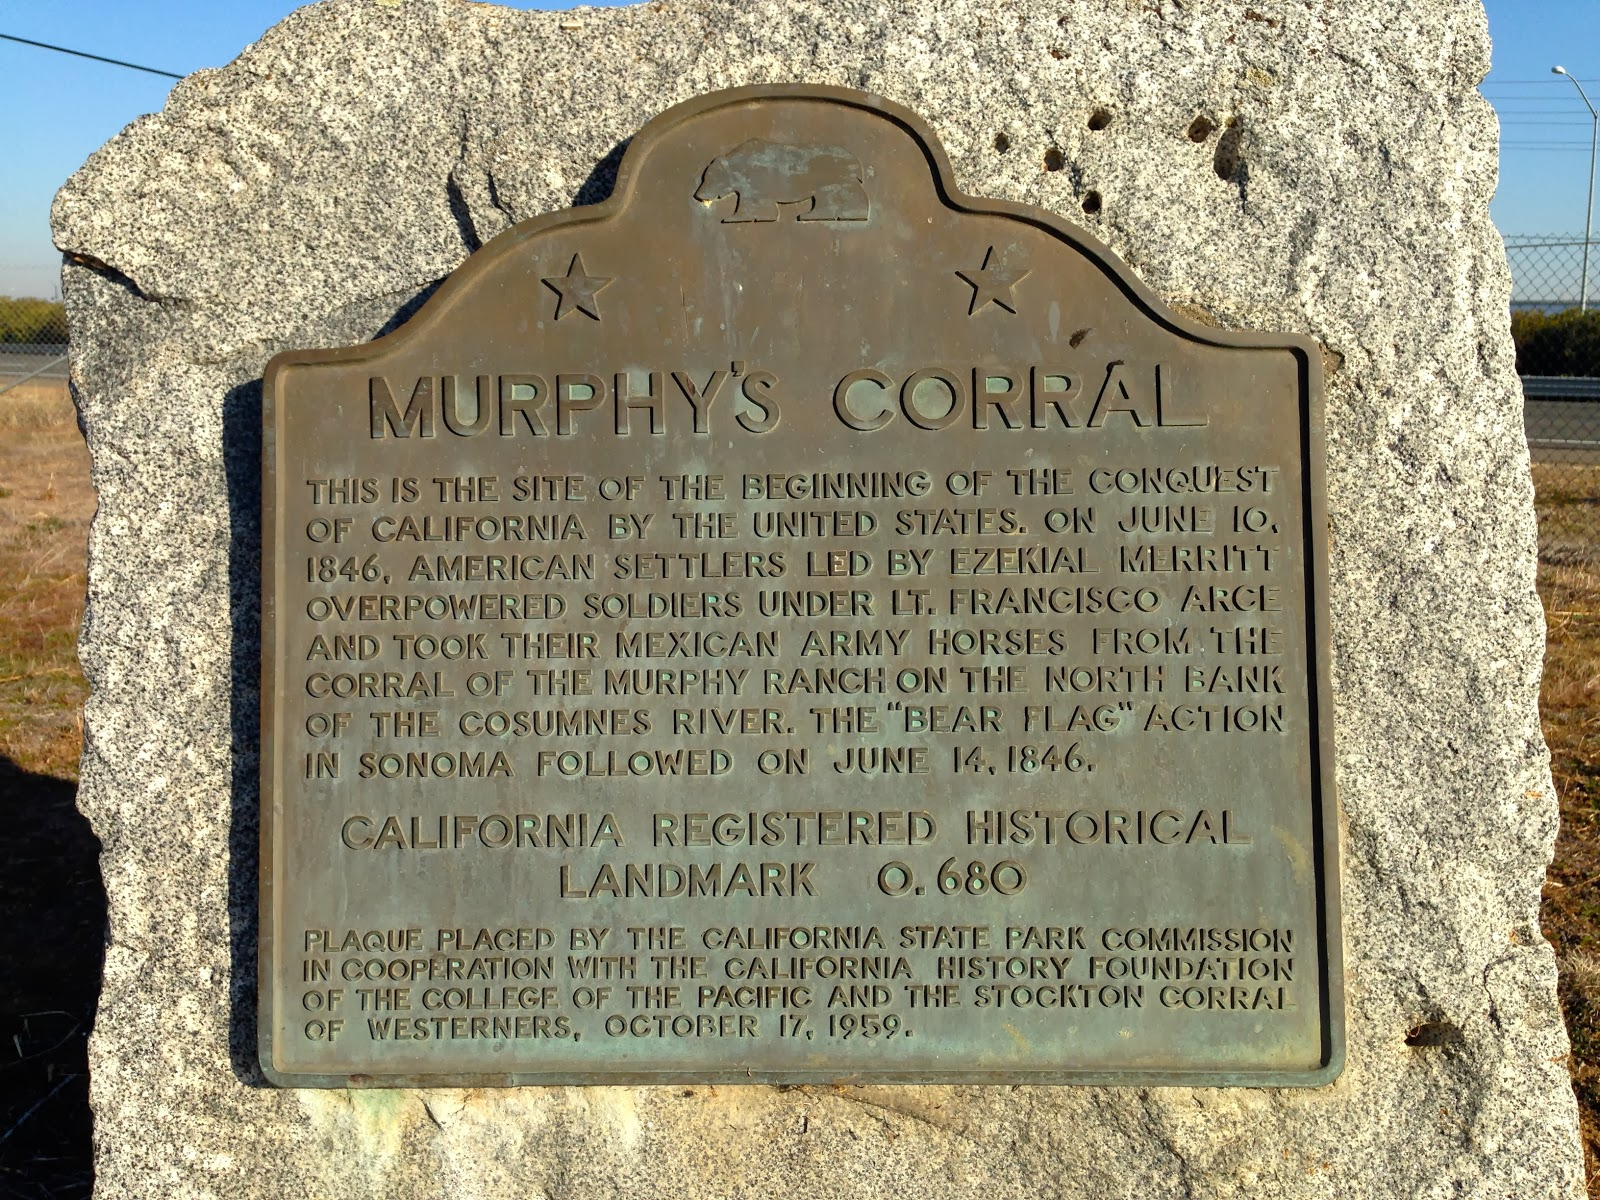 Marker at Murphy's Corral site